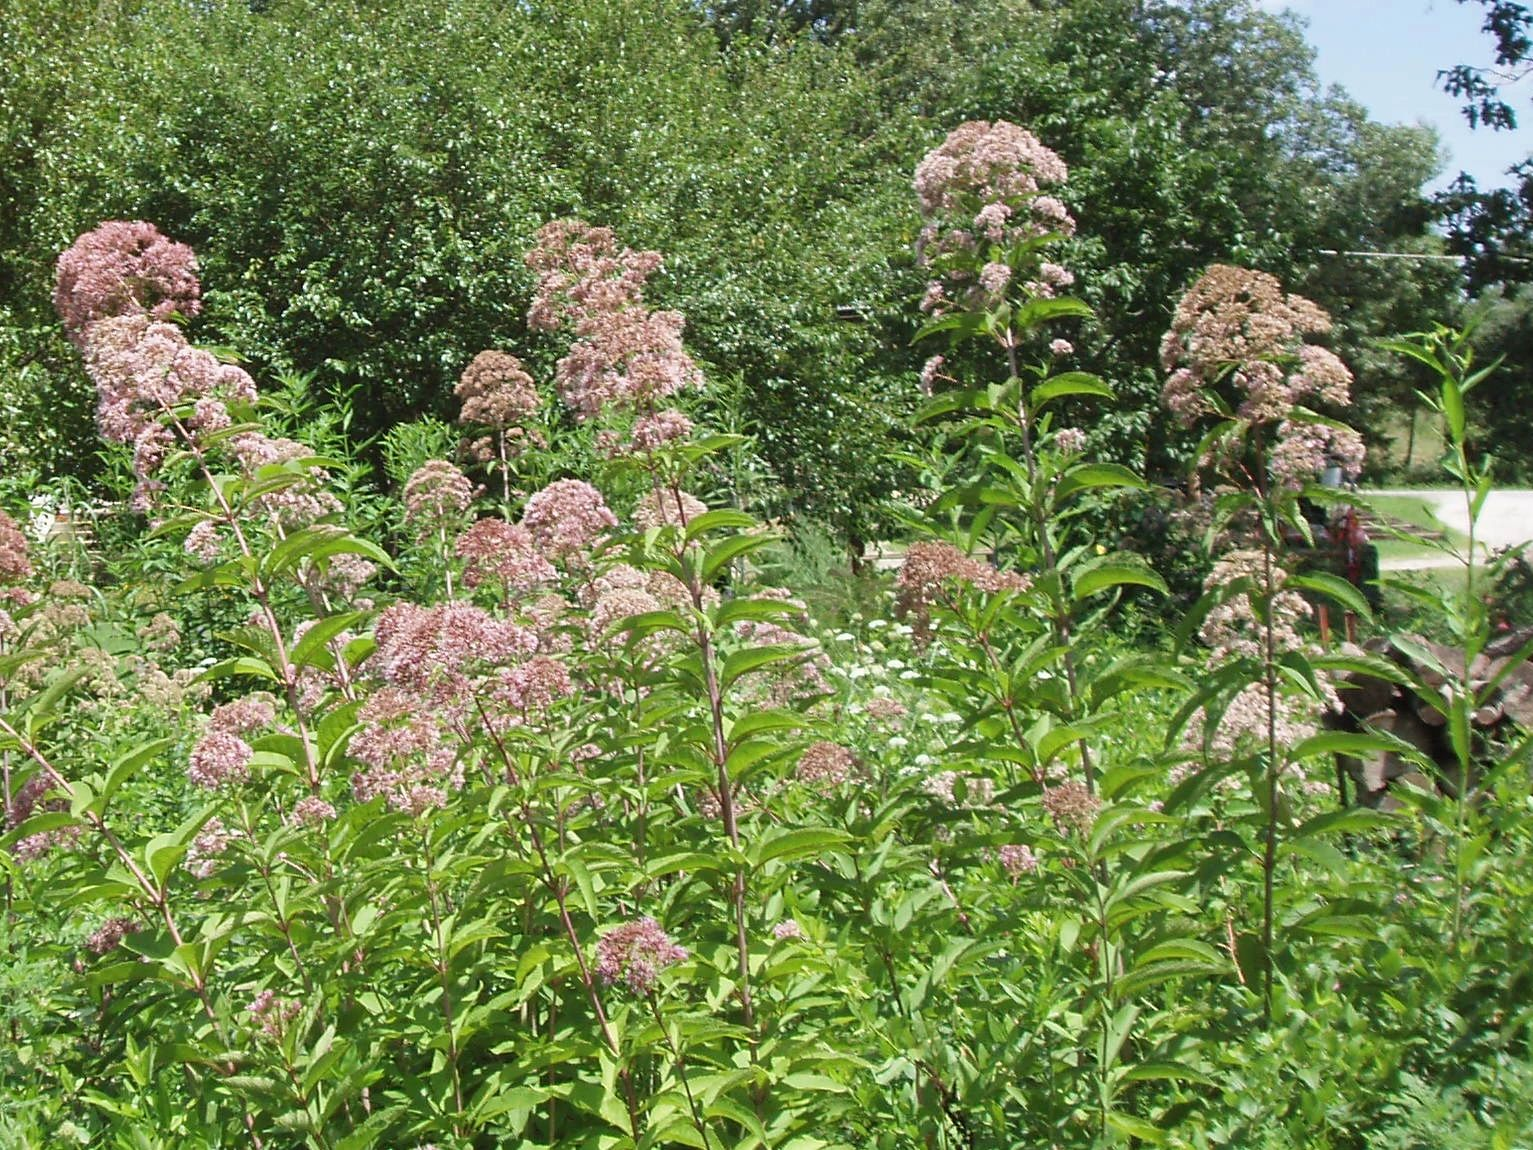 "{""blocks"":[{""key"":""bdi77"",""text"":""Eutrochium maculatum Eupatorium maculatum Spotted Joe-Pye Weed  - potted plants email john@easywildflowers.com \t"",""type"":""unstyled"",""depth"":0,""inlineStyleRanges"":[],""entityRanges"":[],""data"":{}}],""entityMap"":{}}"